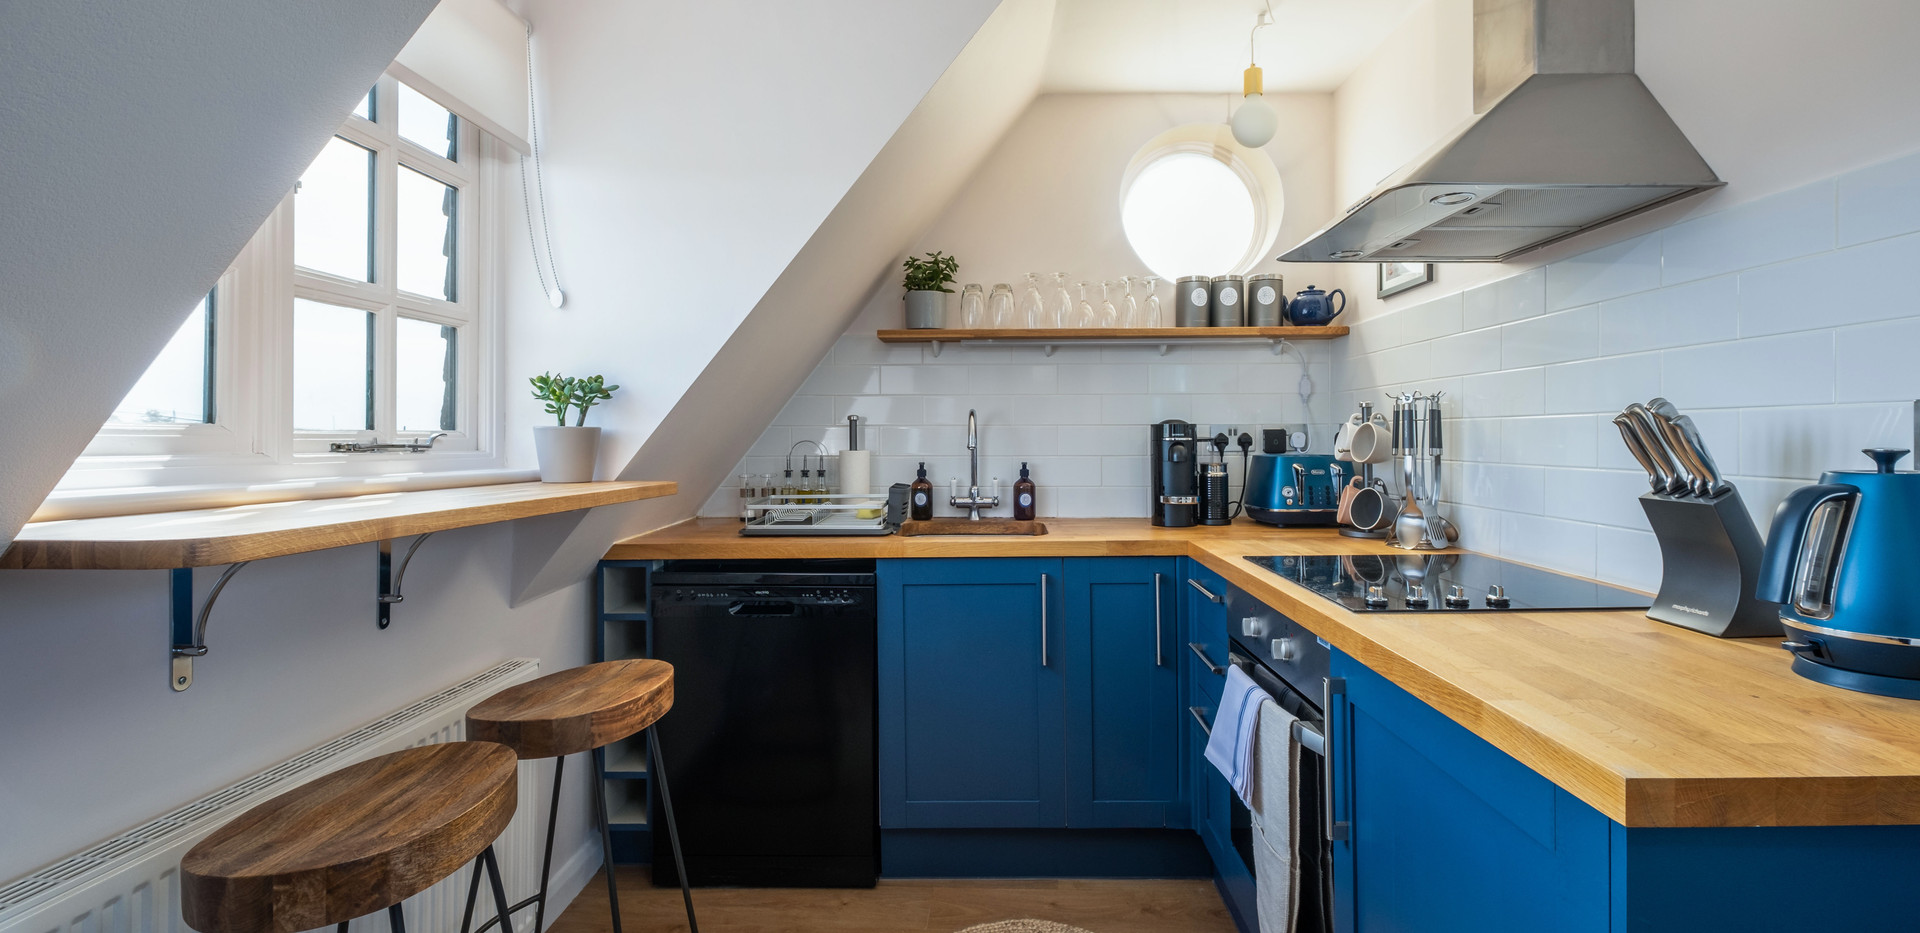 Kitchen and coffee bar